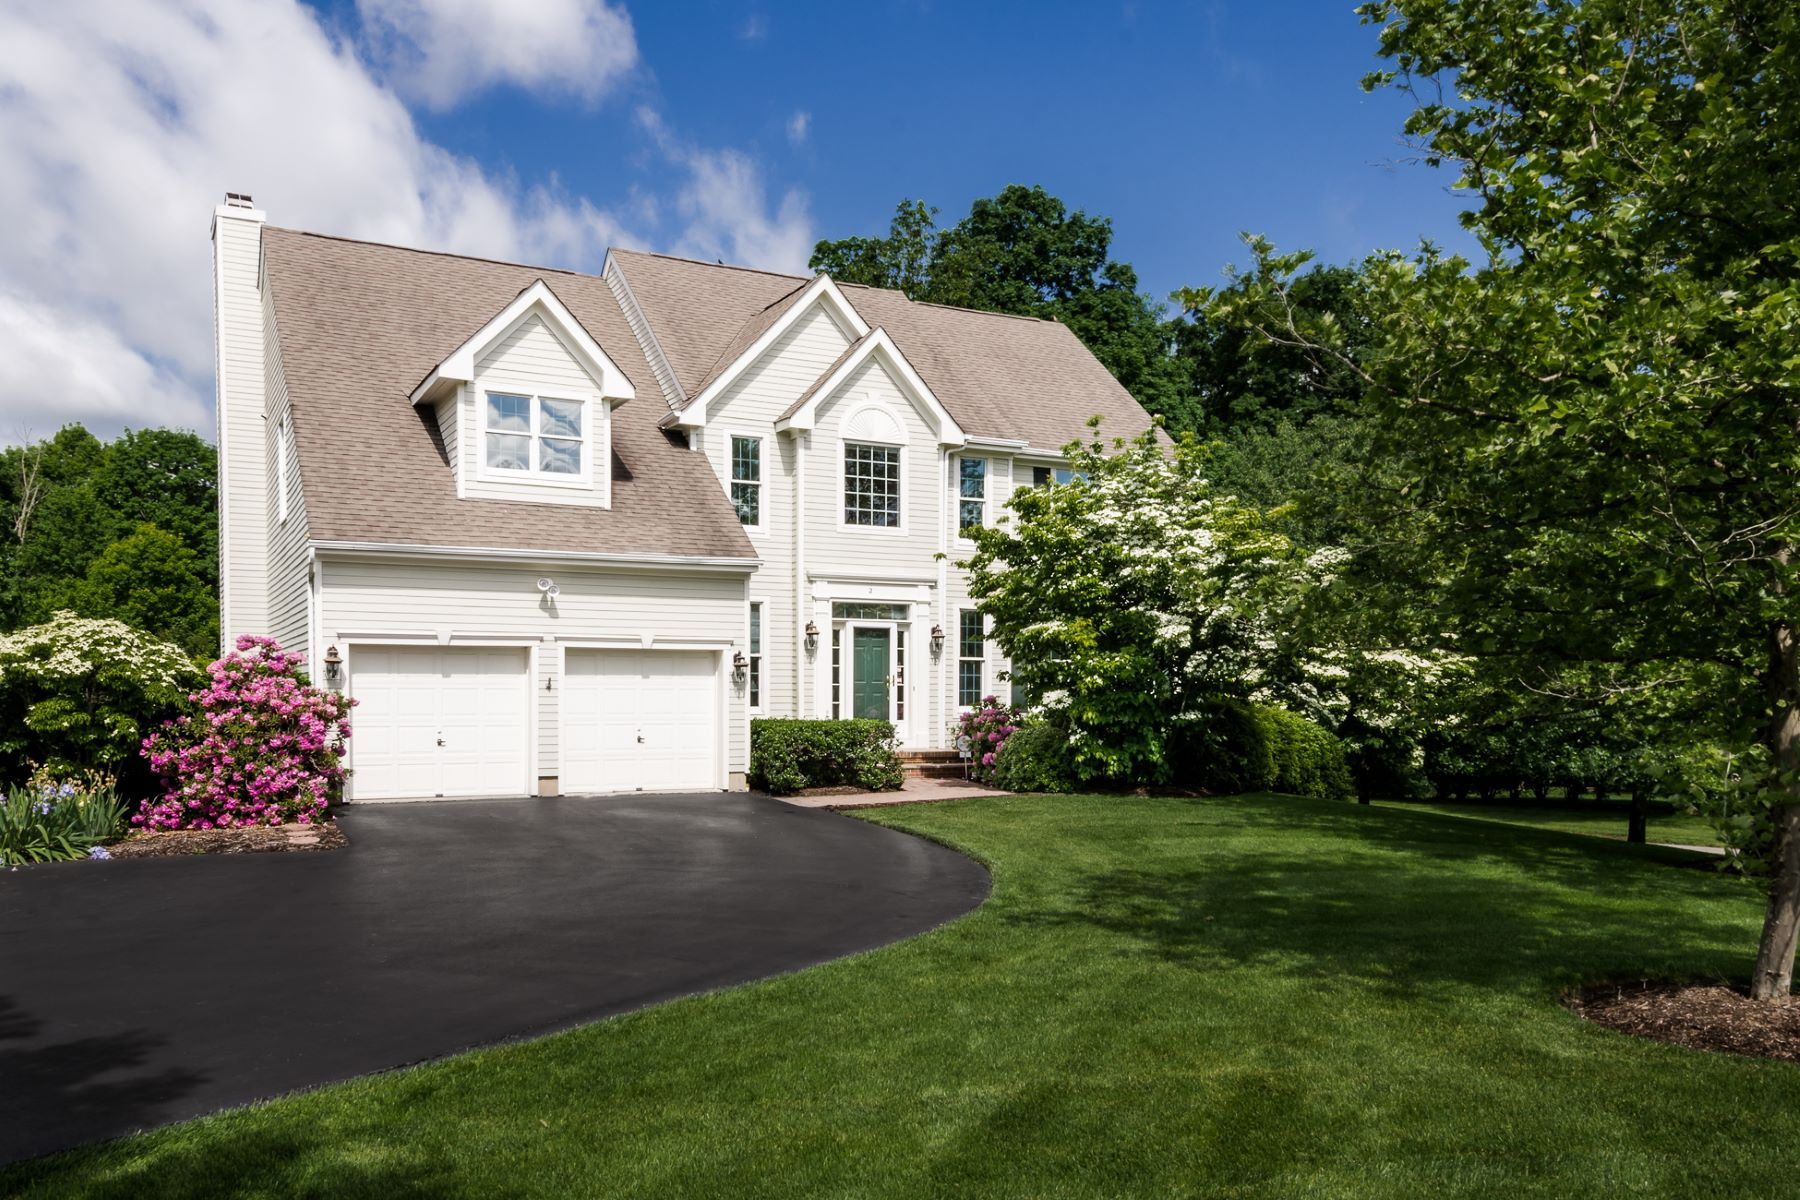 Lifestyle And Convenience In Cherry Valley 2 Eagle Creek Court, Skillman, New Jersey 08558 United States